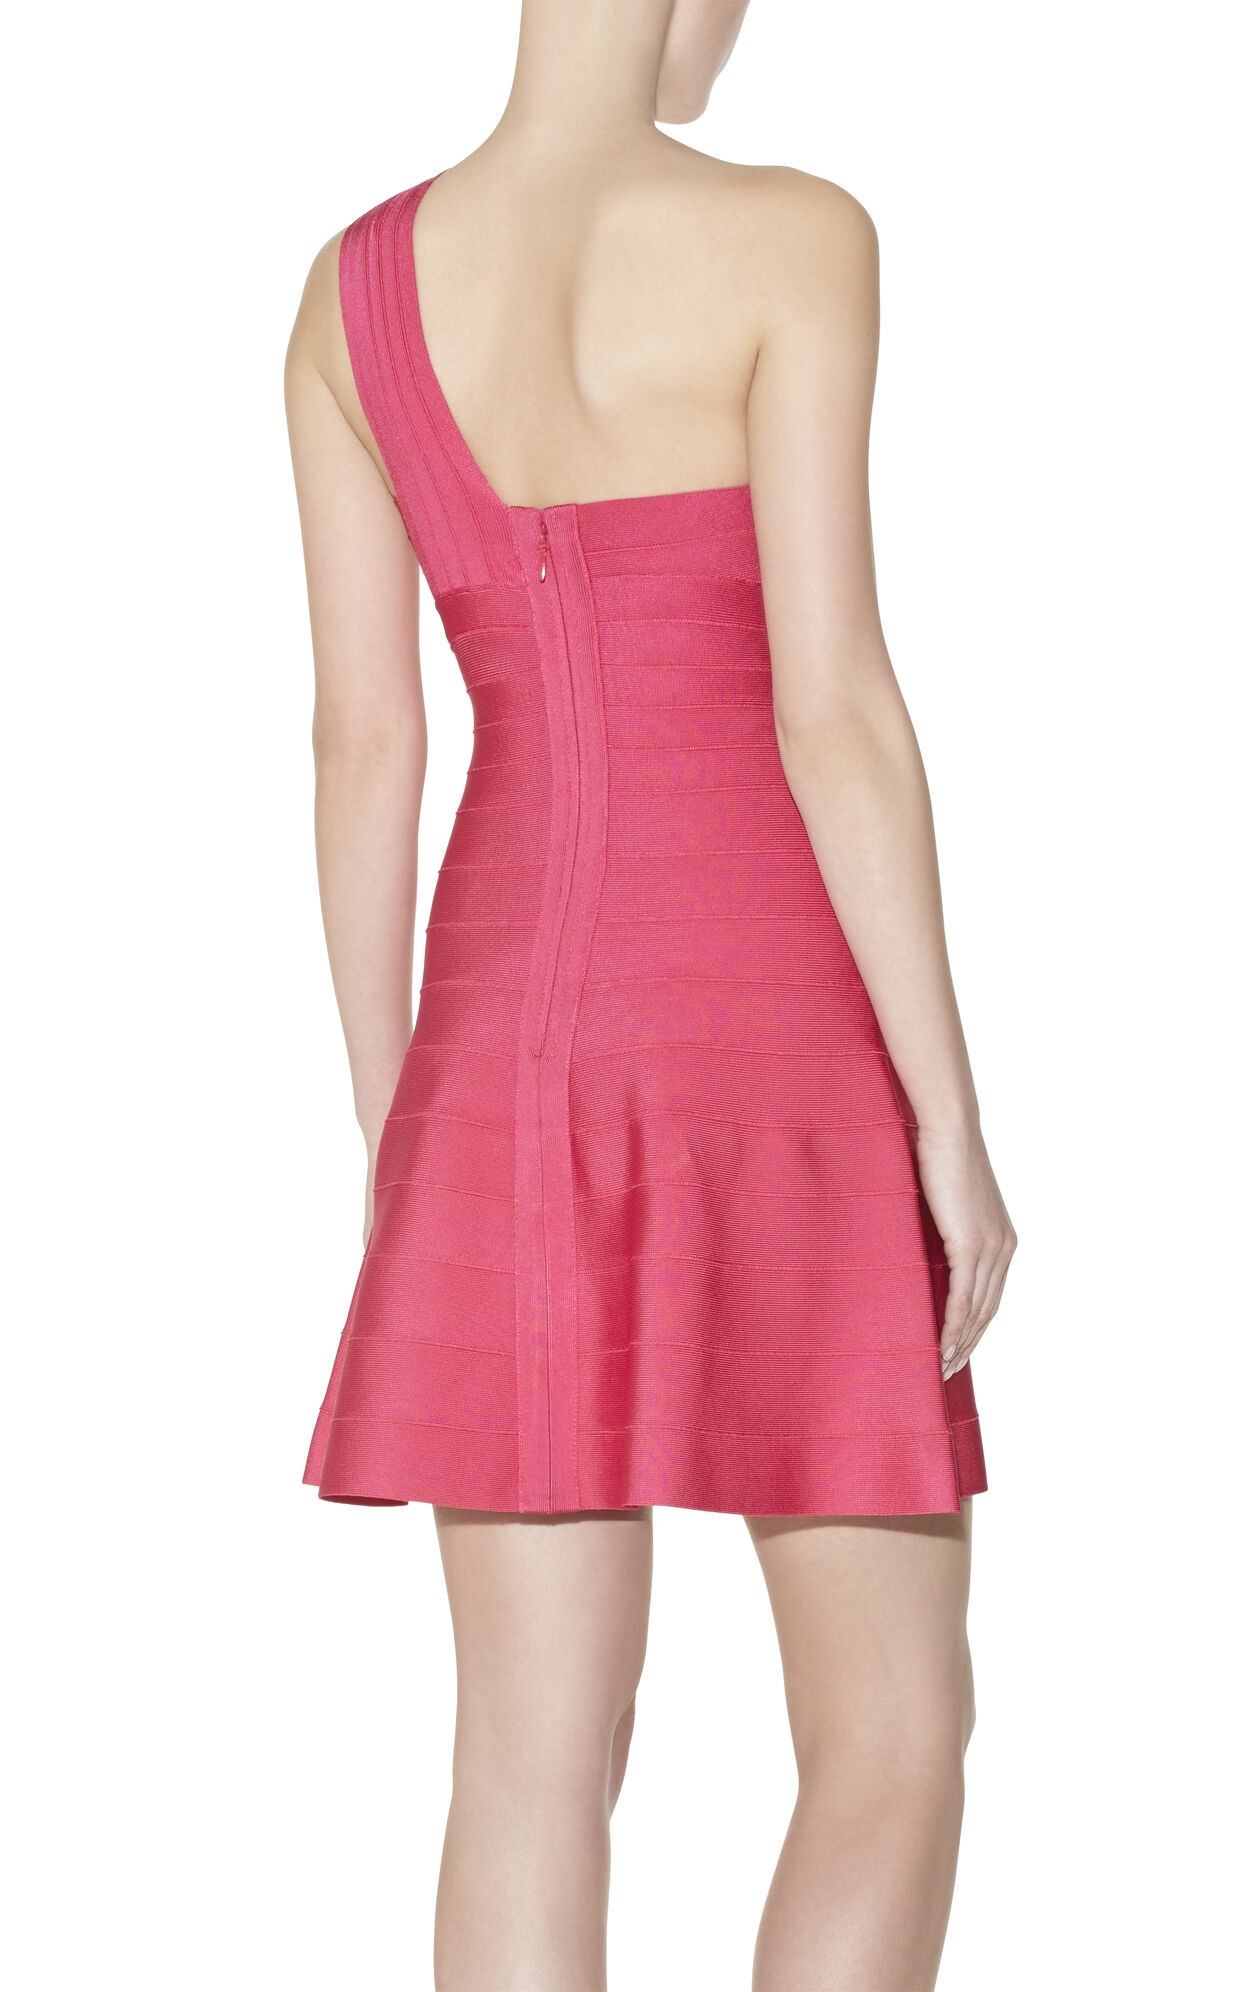 Sydney One-Shoulder Bandage Dress